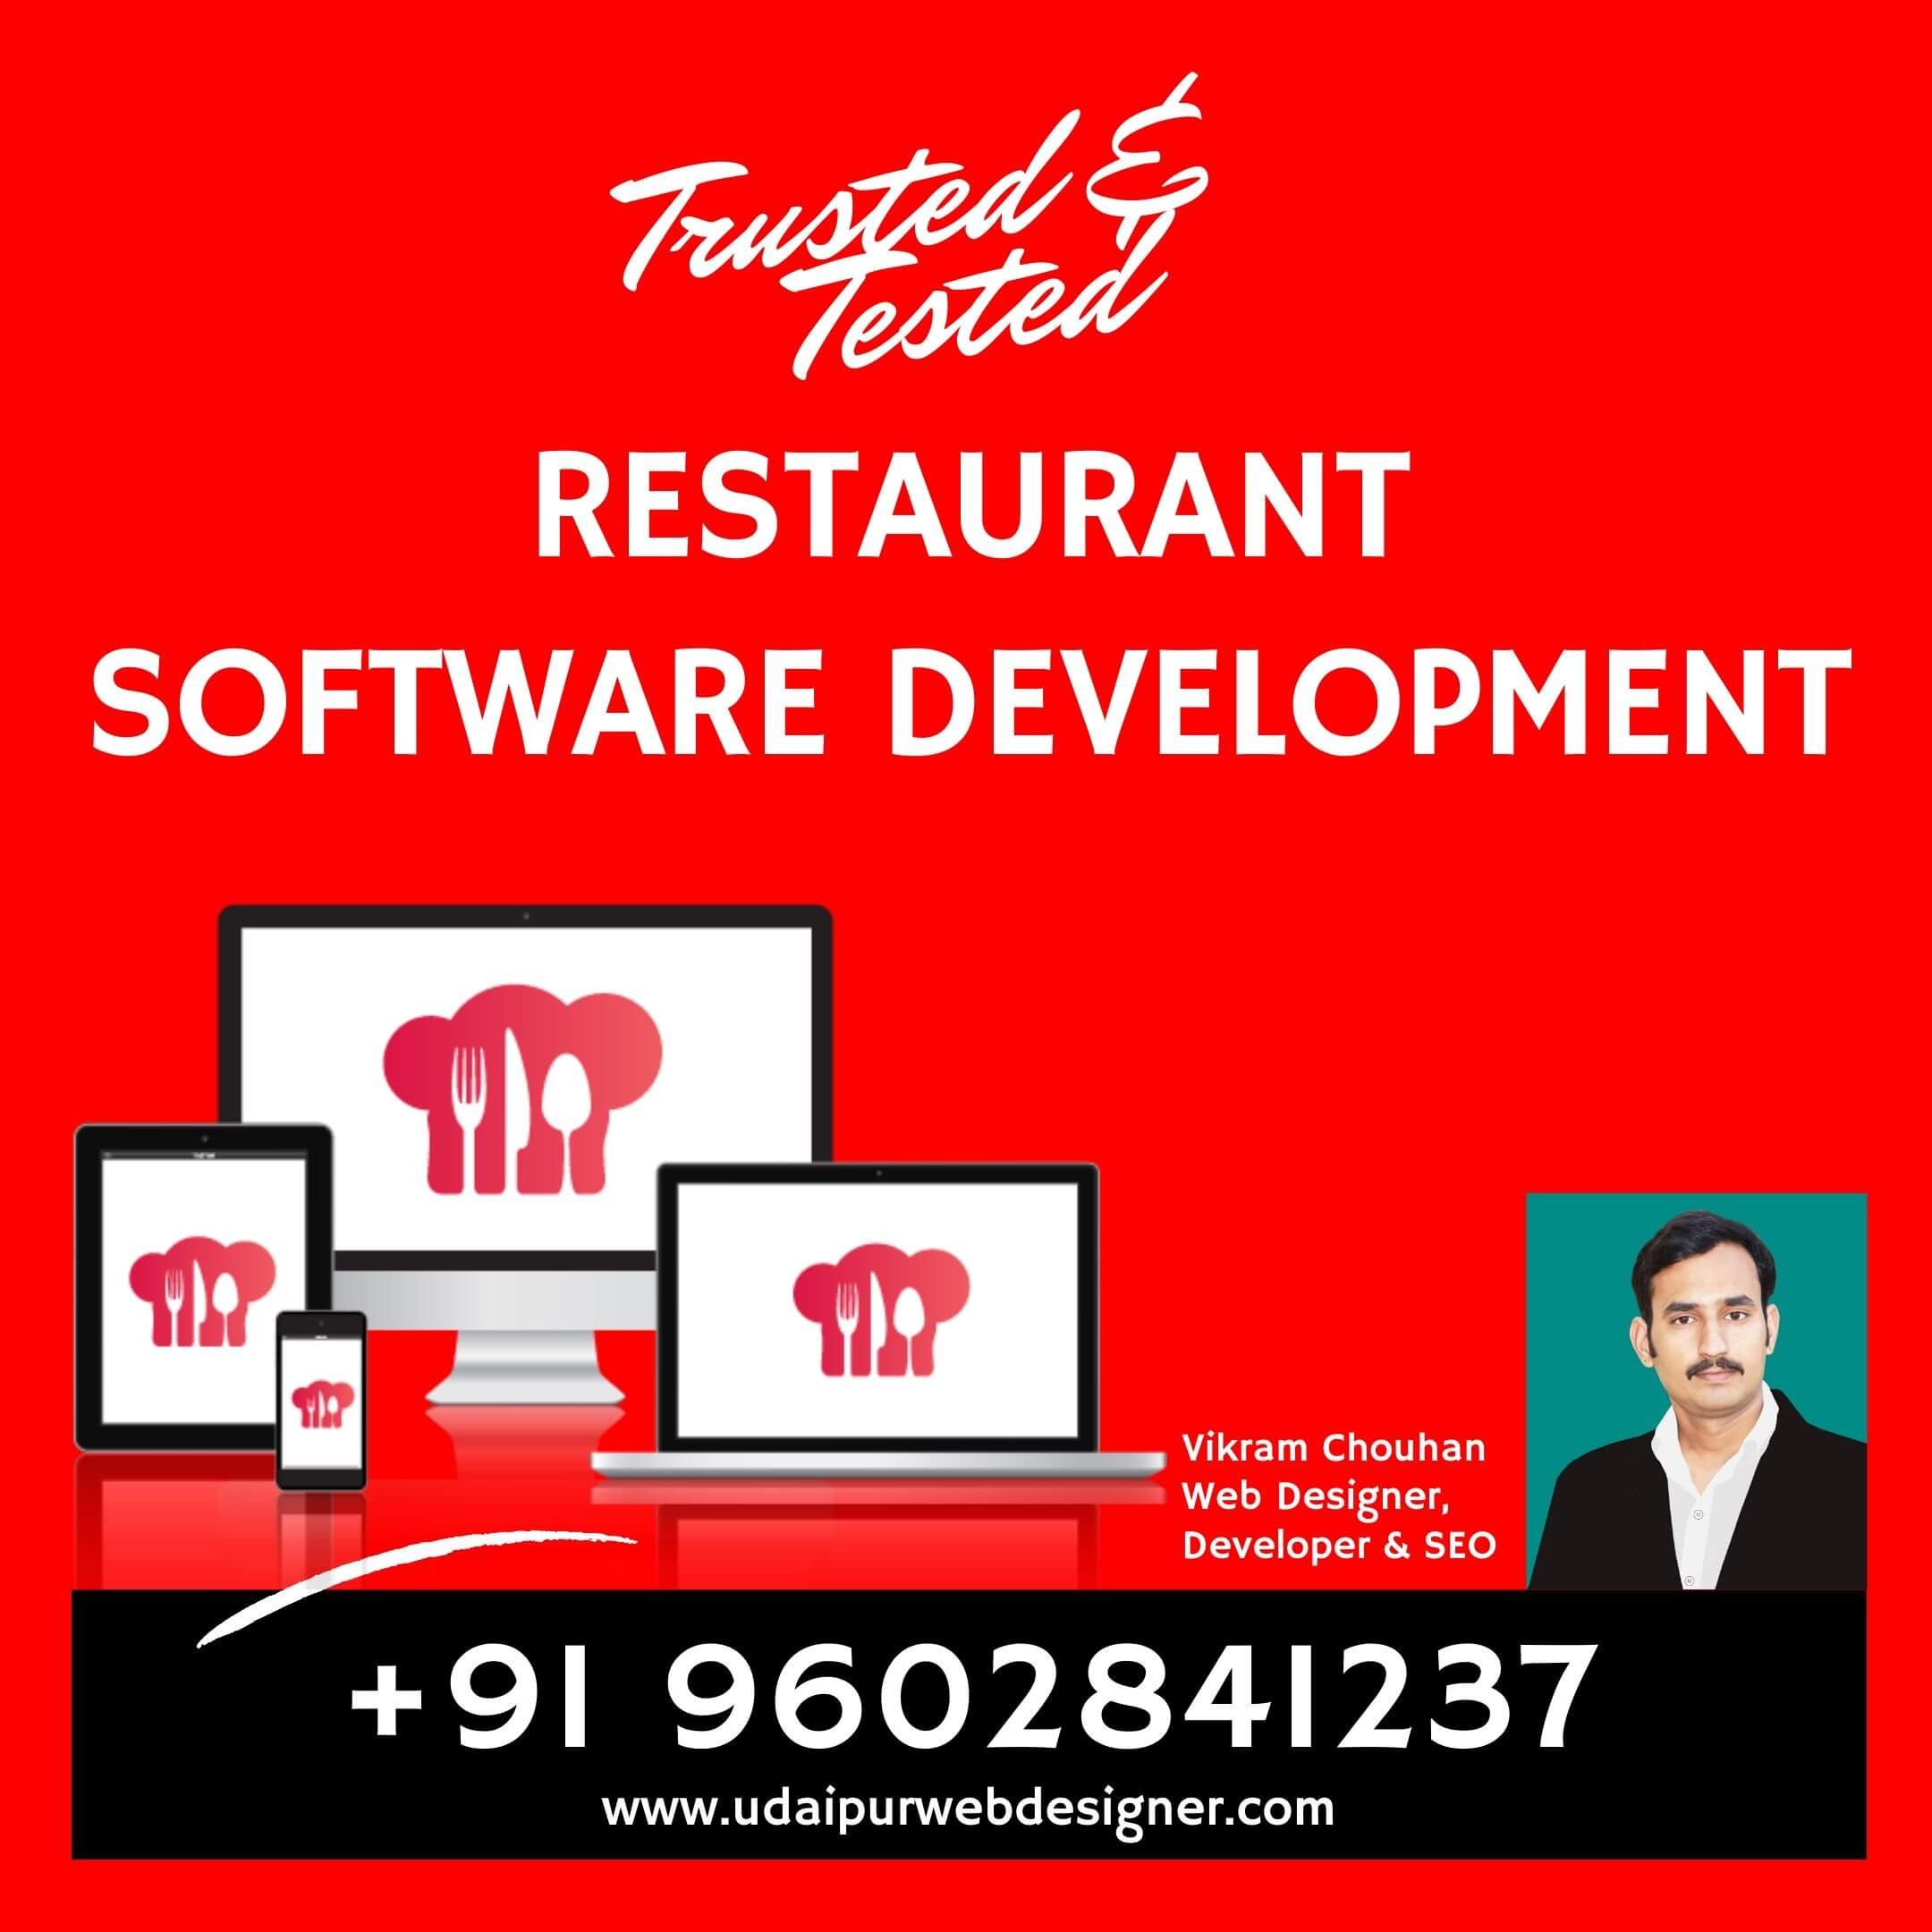 Restaurant Software Development